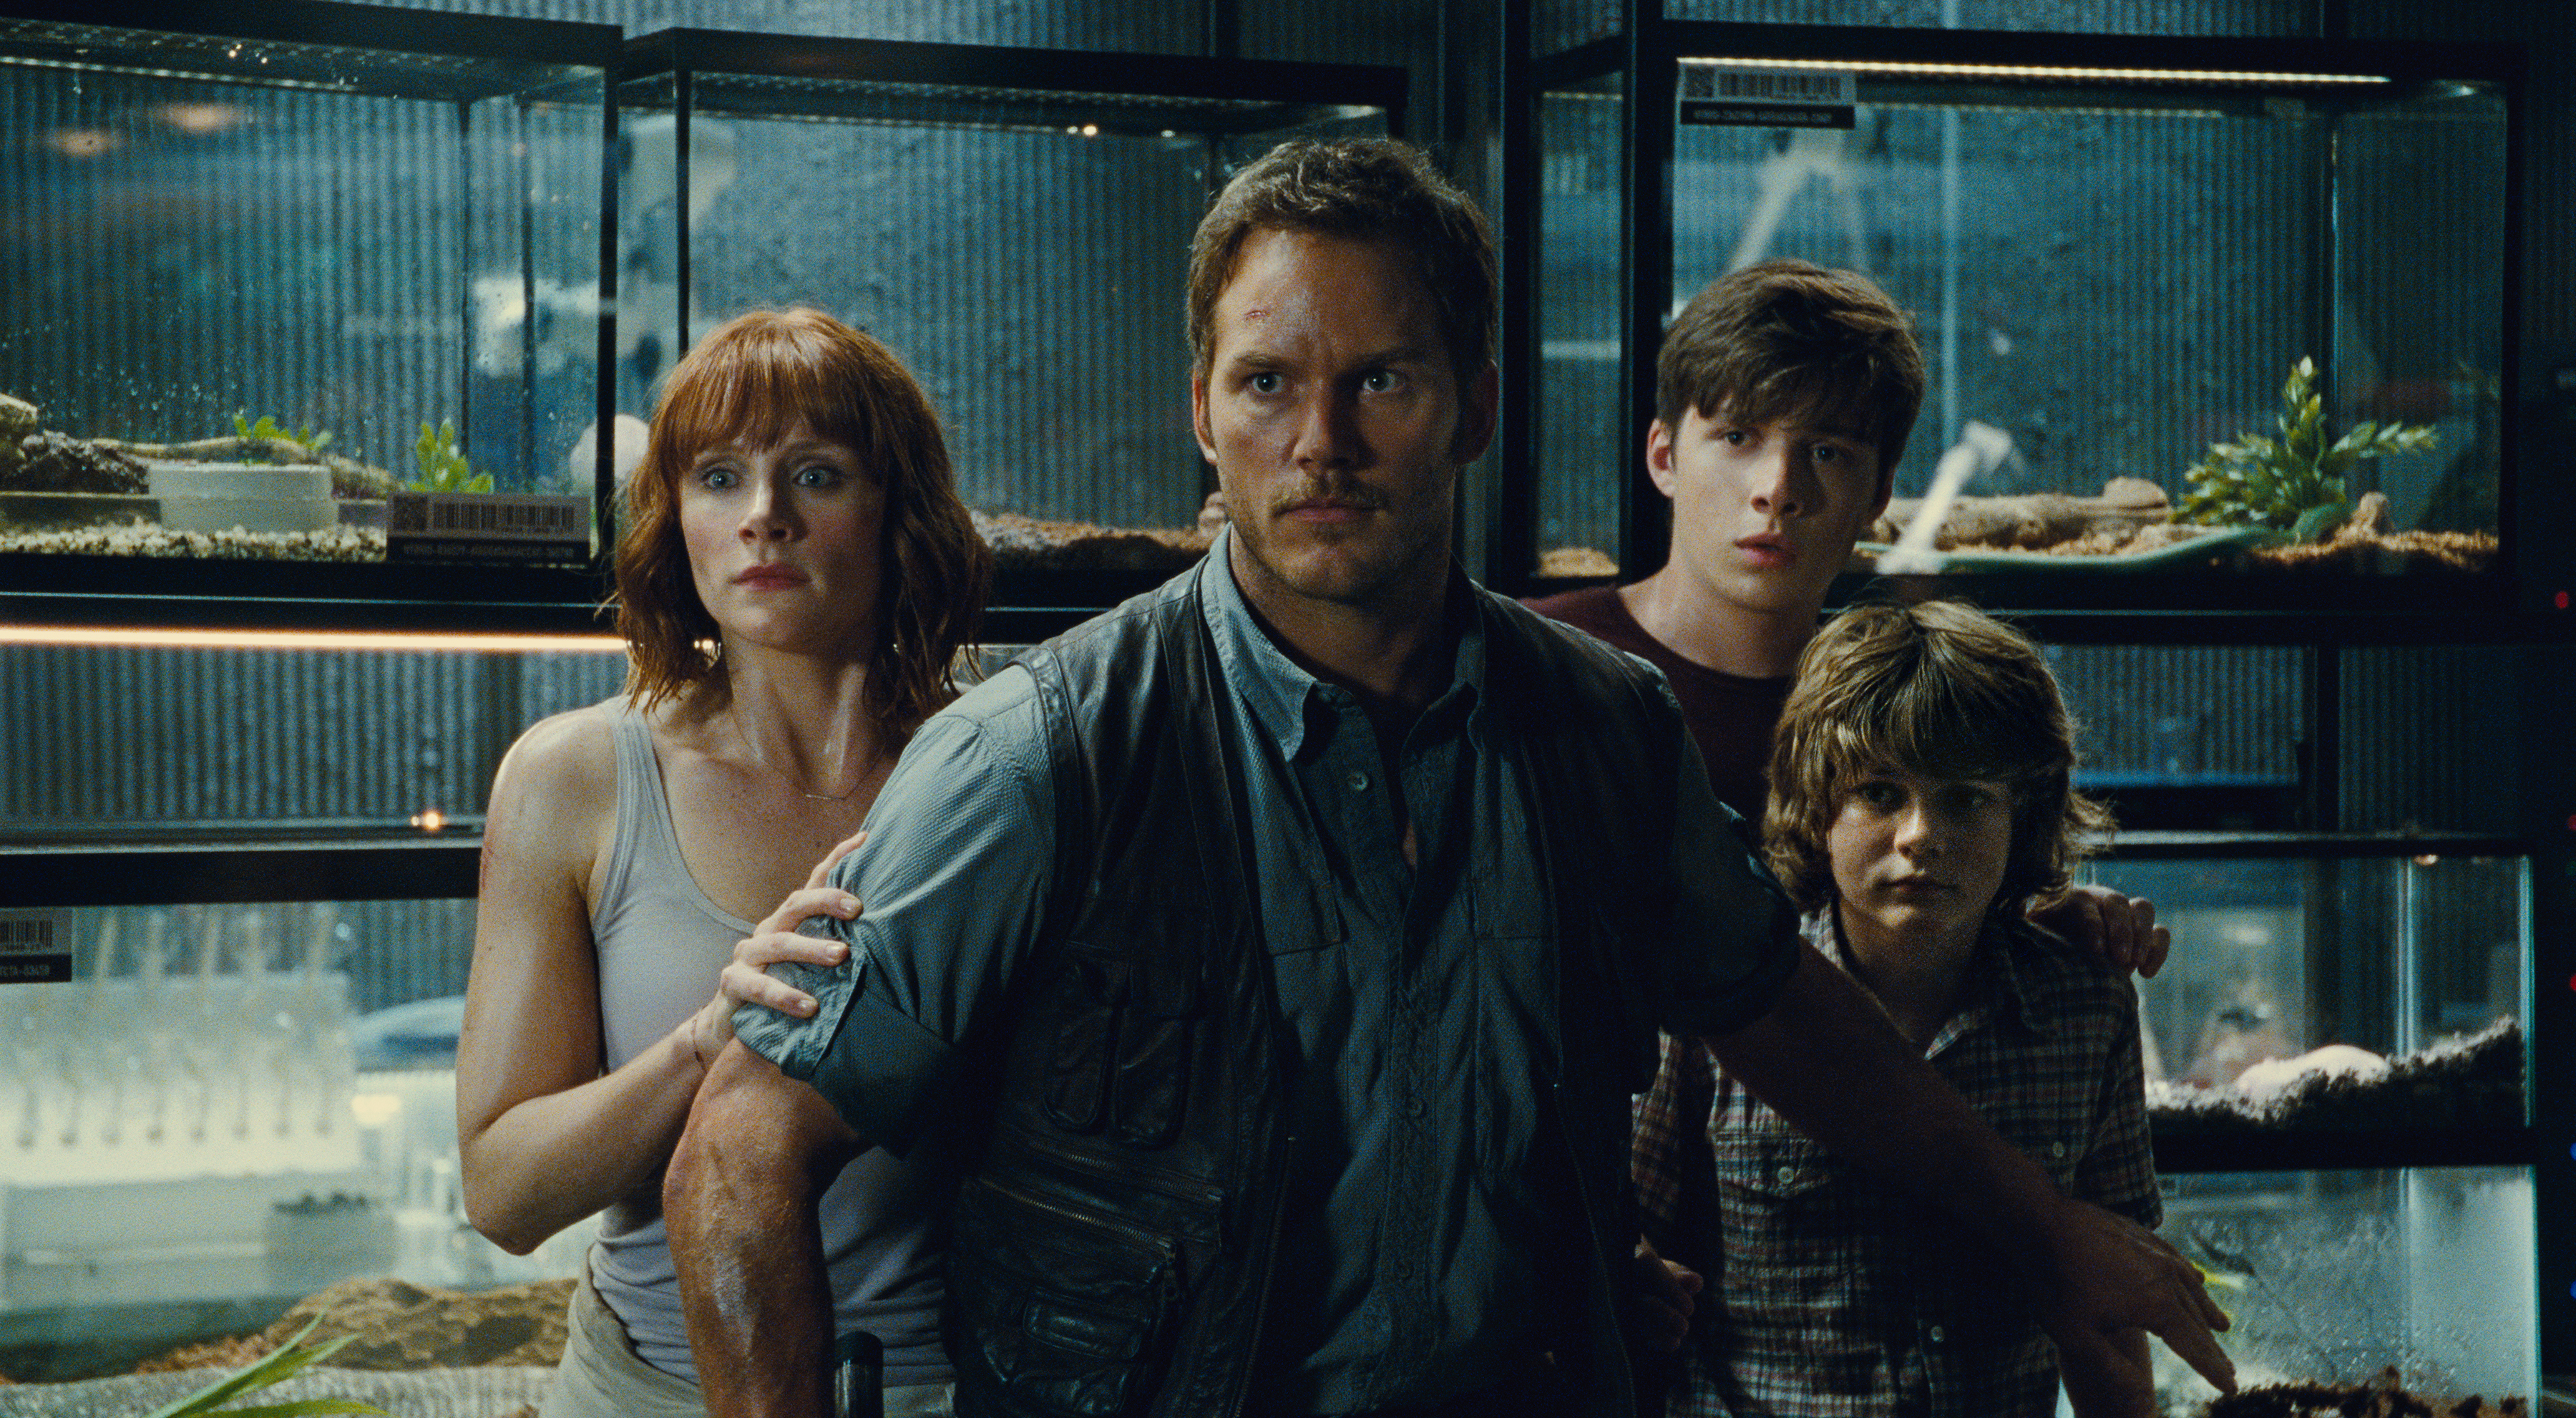 jurassic world pratt dallas simpkins robinson